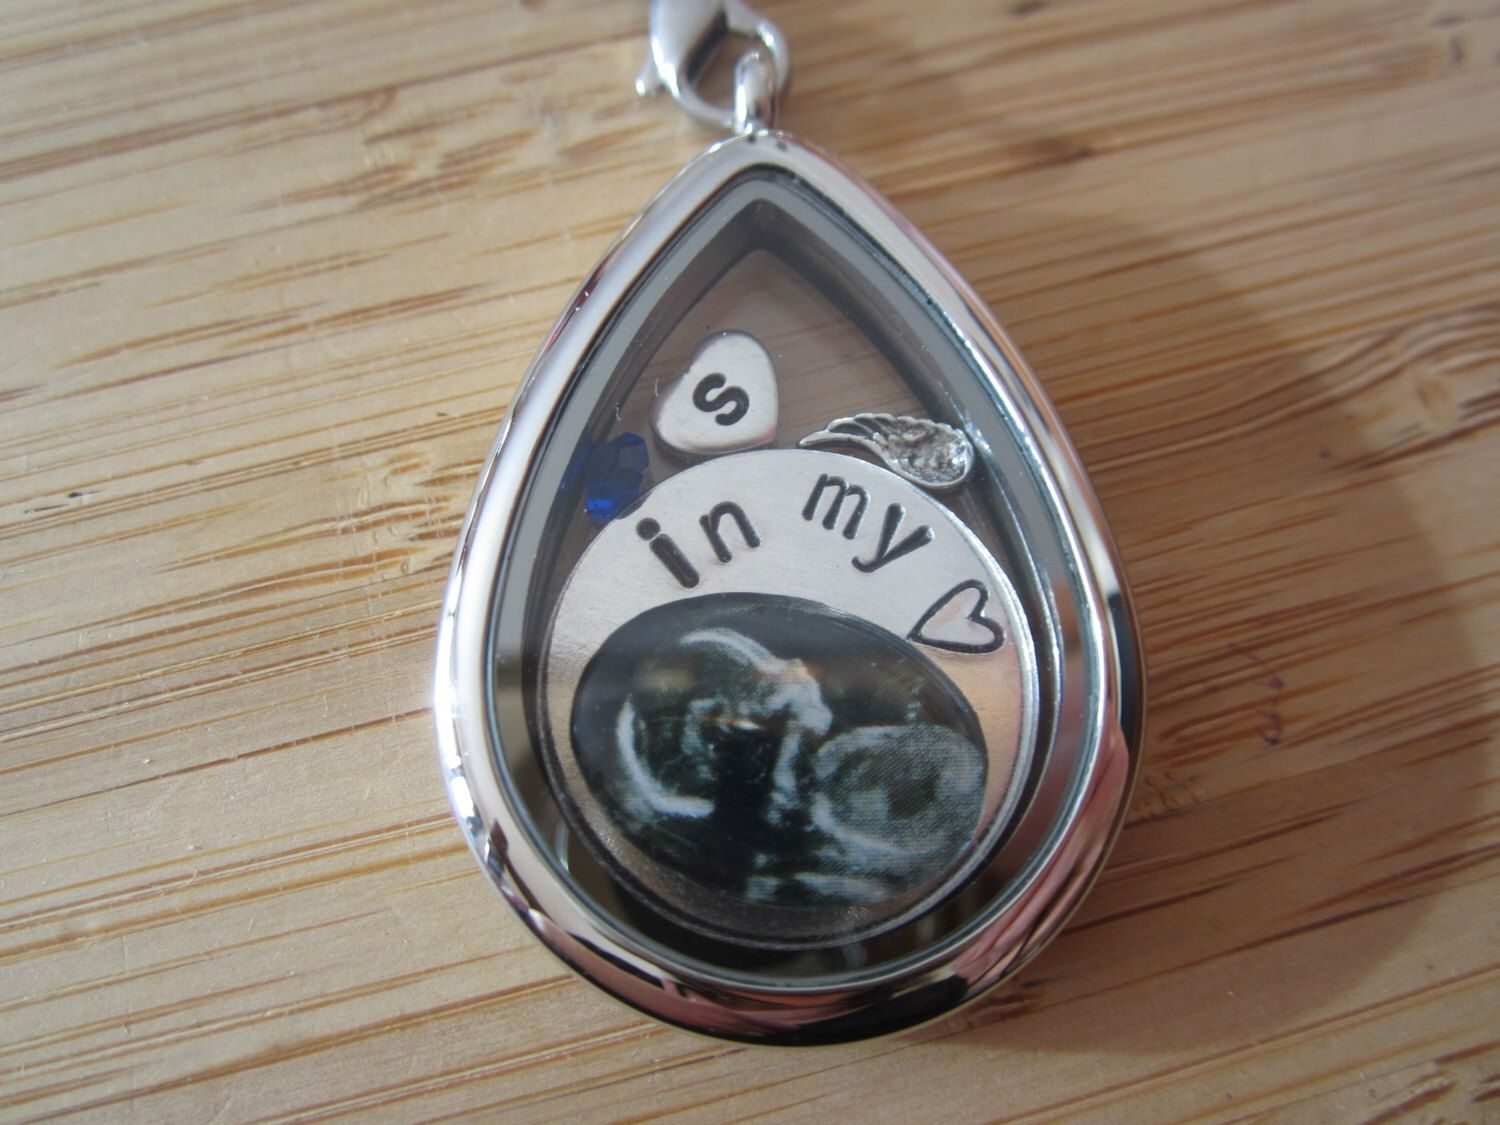 Miscarriage stillborn ultrasound photo charm with stamped disc for miscarriage stillborn ultrasound photo charm with stamped disc for floating locket memorial remembrance jewelry grief aloadofball Images